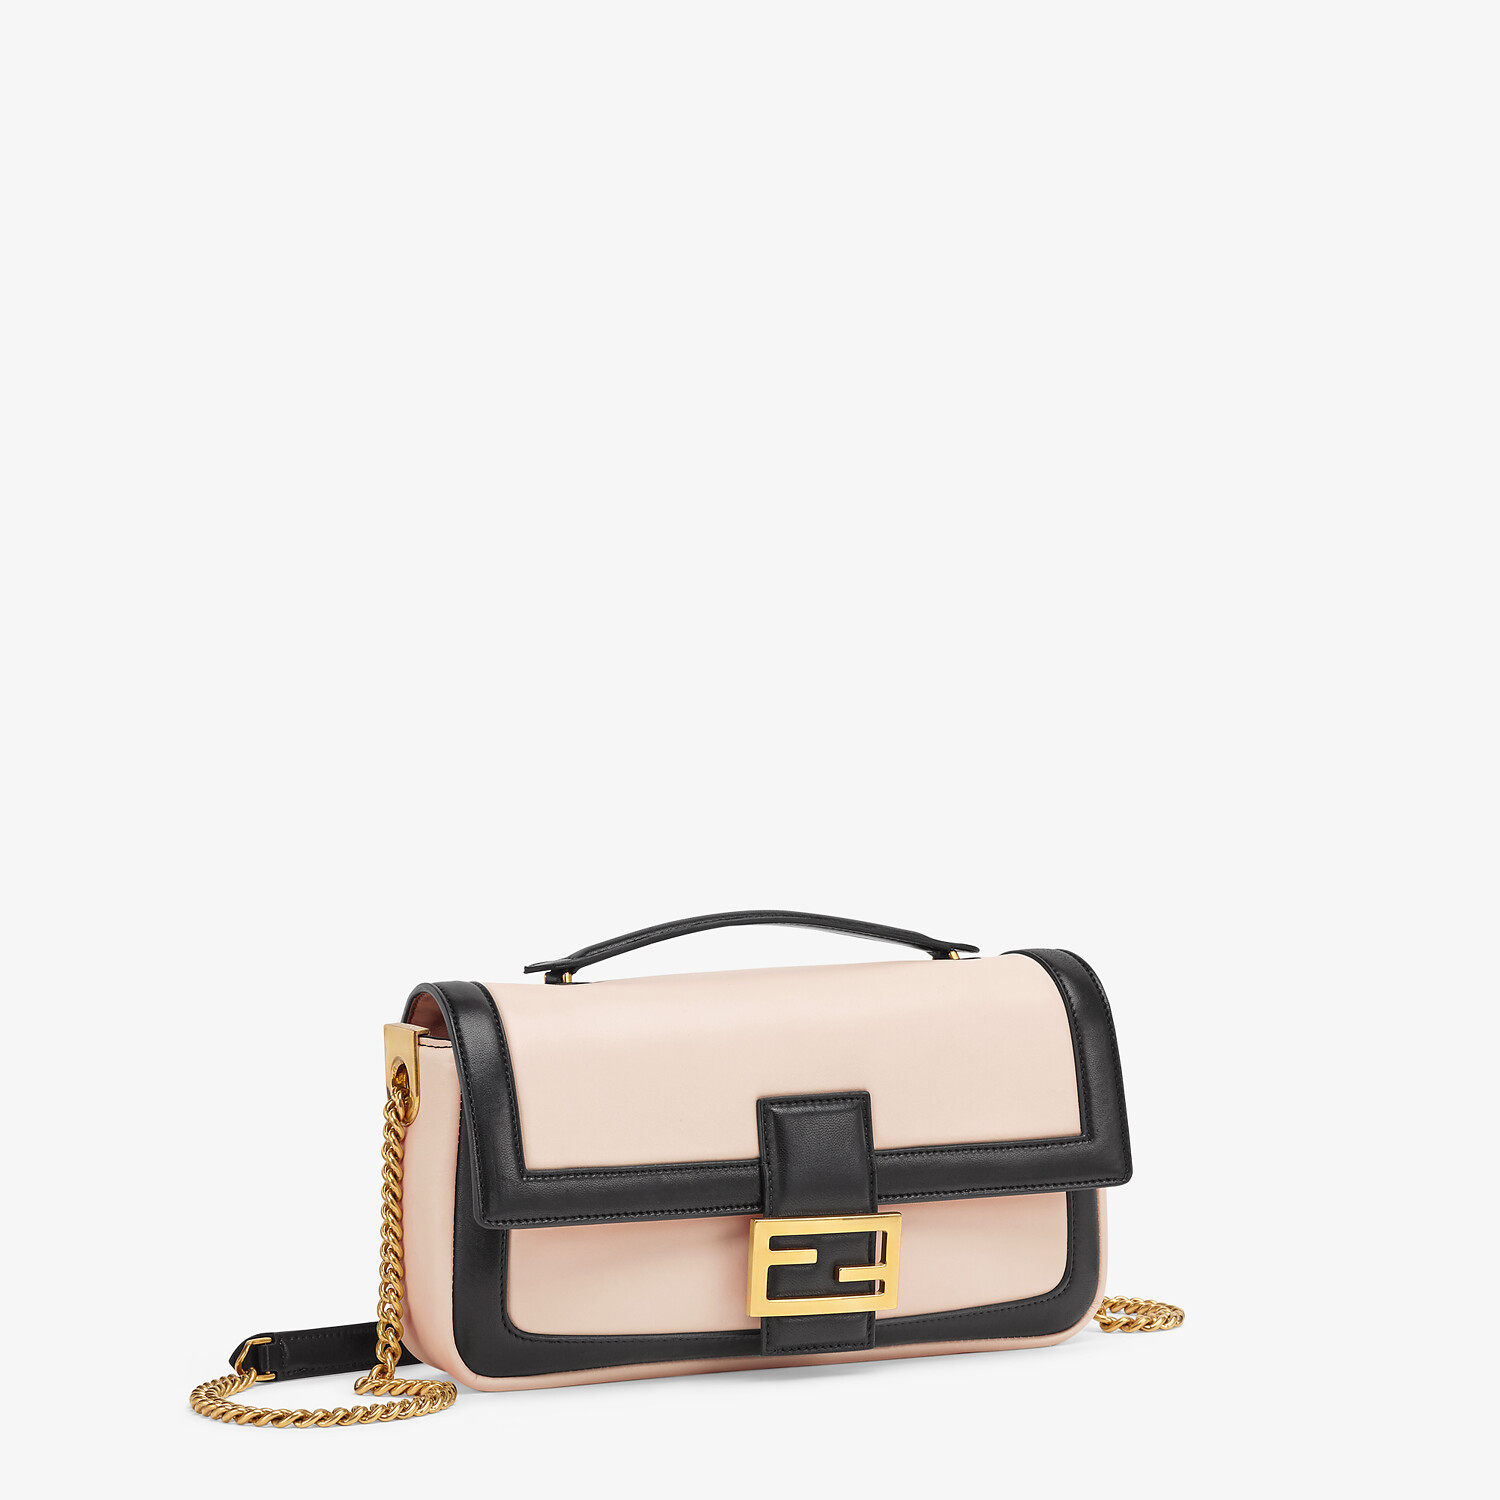 FENDI BAGUETTE CHAIN - Pink and black nappa leather bag - view 2 detail